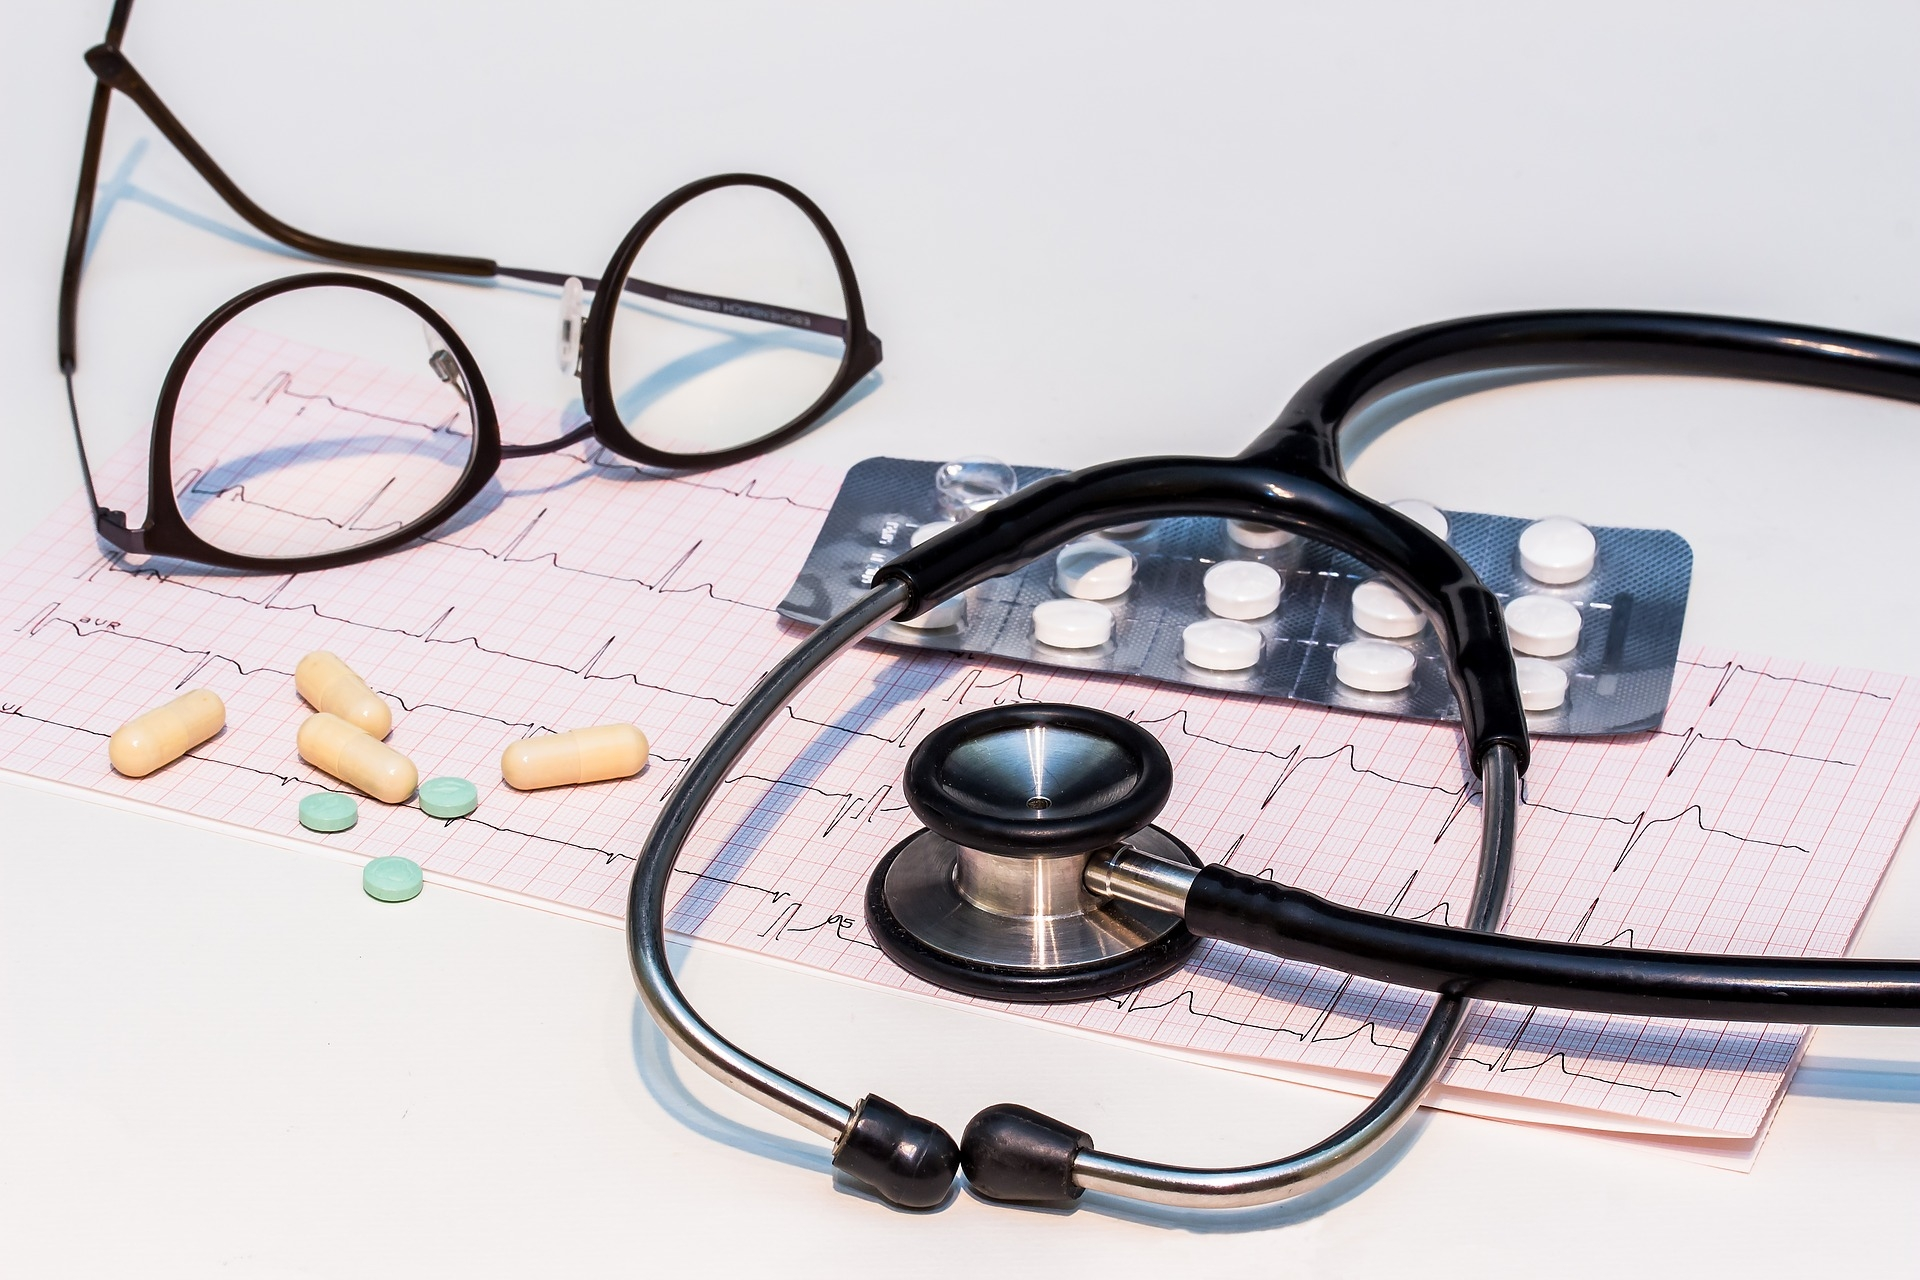 Indian Medical Council Bill gets go ahead in Lok Sabha; to supersede Medical Council of India